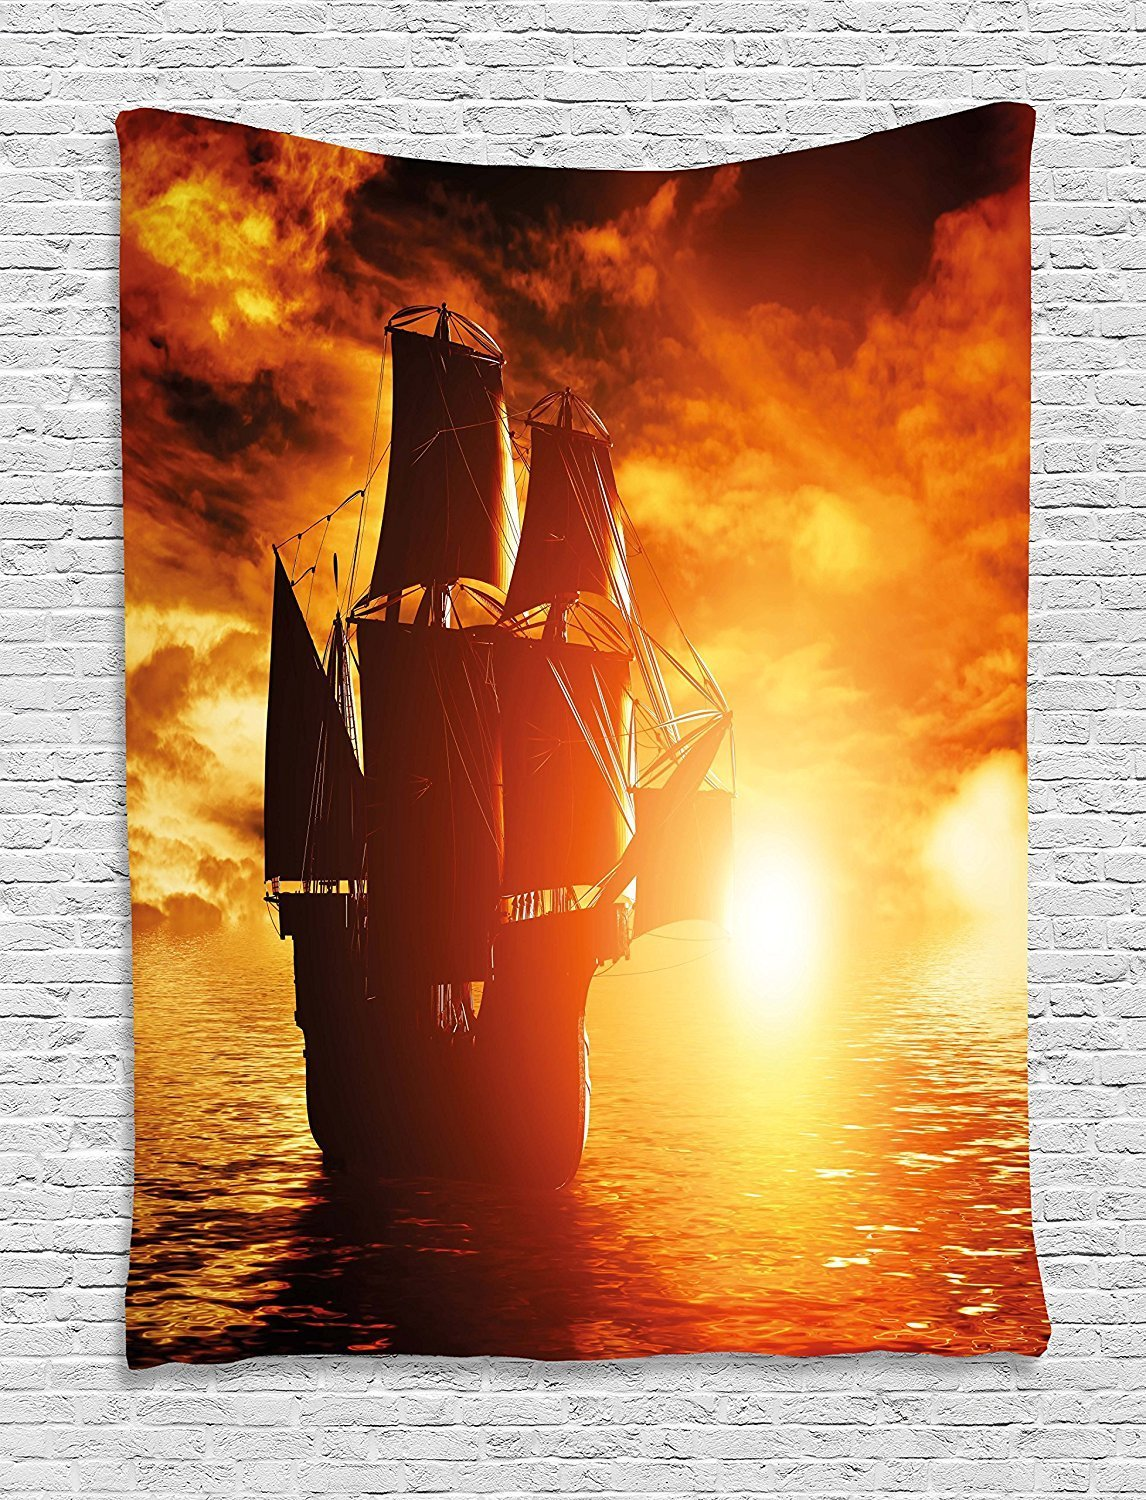 XHFITCLtd Pirate Ship Tapestry, Ancient Pirate Ship Sailing on the Ocean at Sunset in Full Sail Print, Wall Hanging for Bedroom Living Room Dorm, 60 W X 80 L Inches, Orange Yellow Black